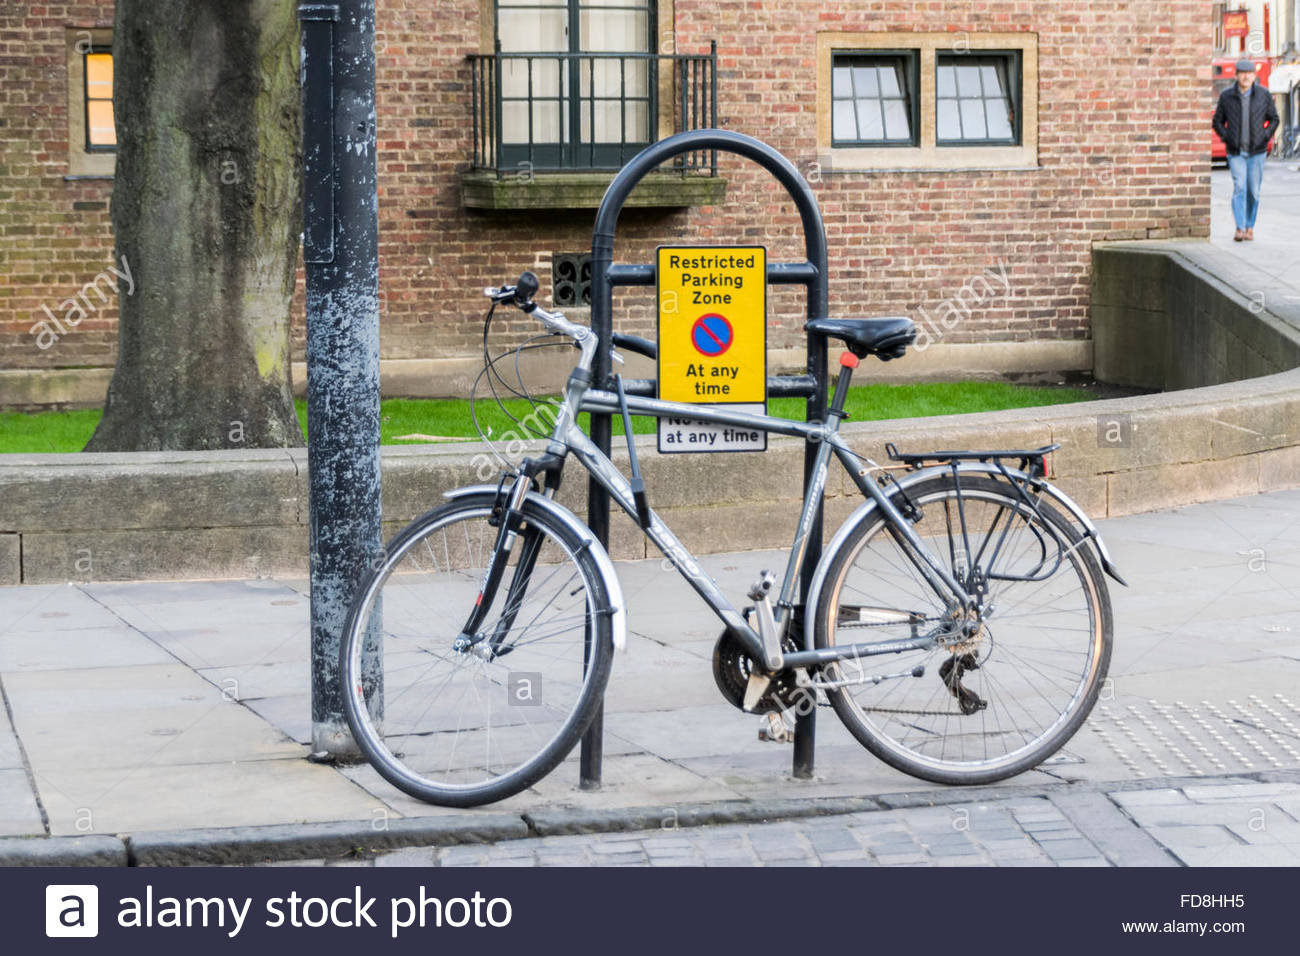 Bicycle locked to a metal post with a restricted parking zone sign - Stock Image